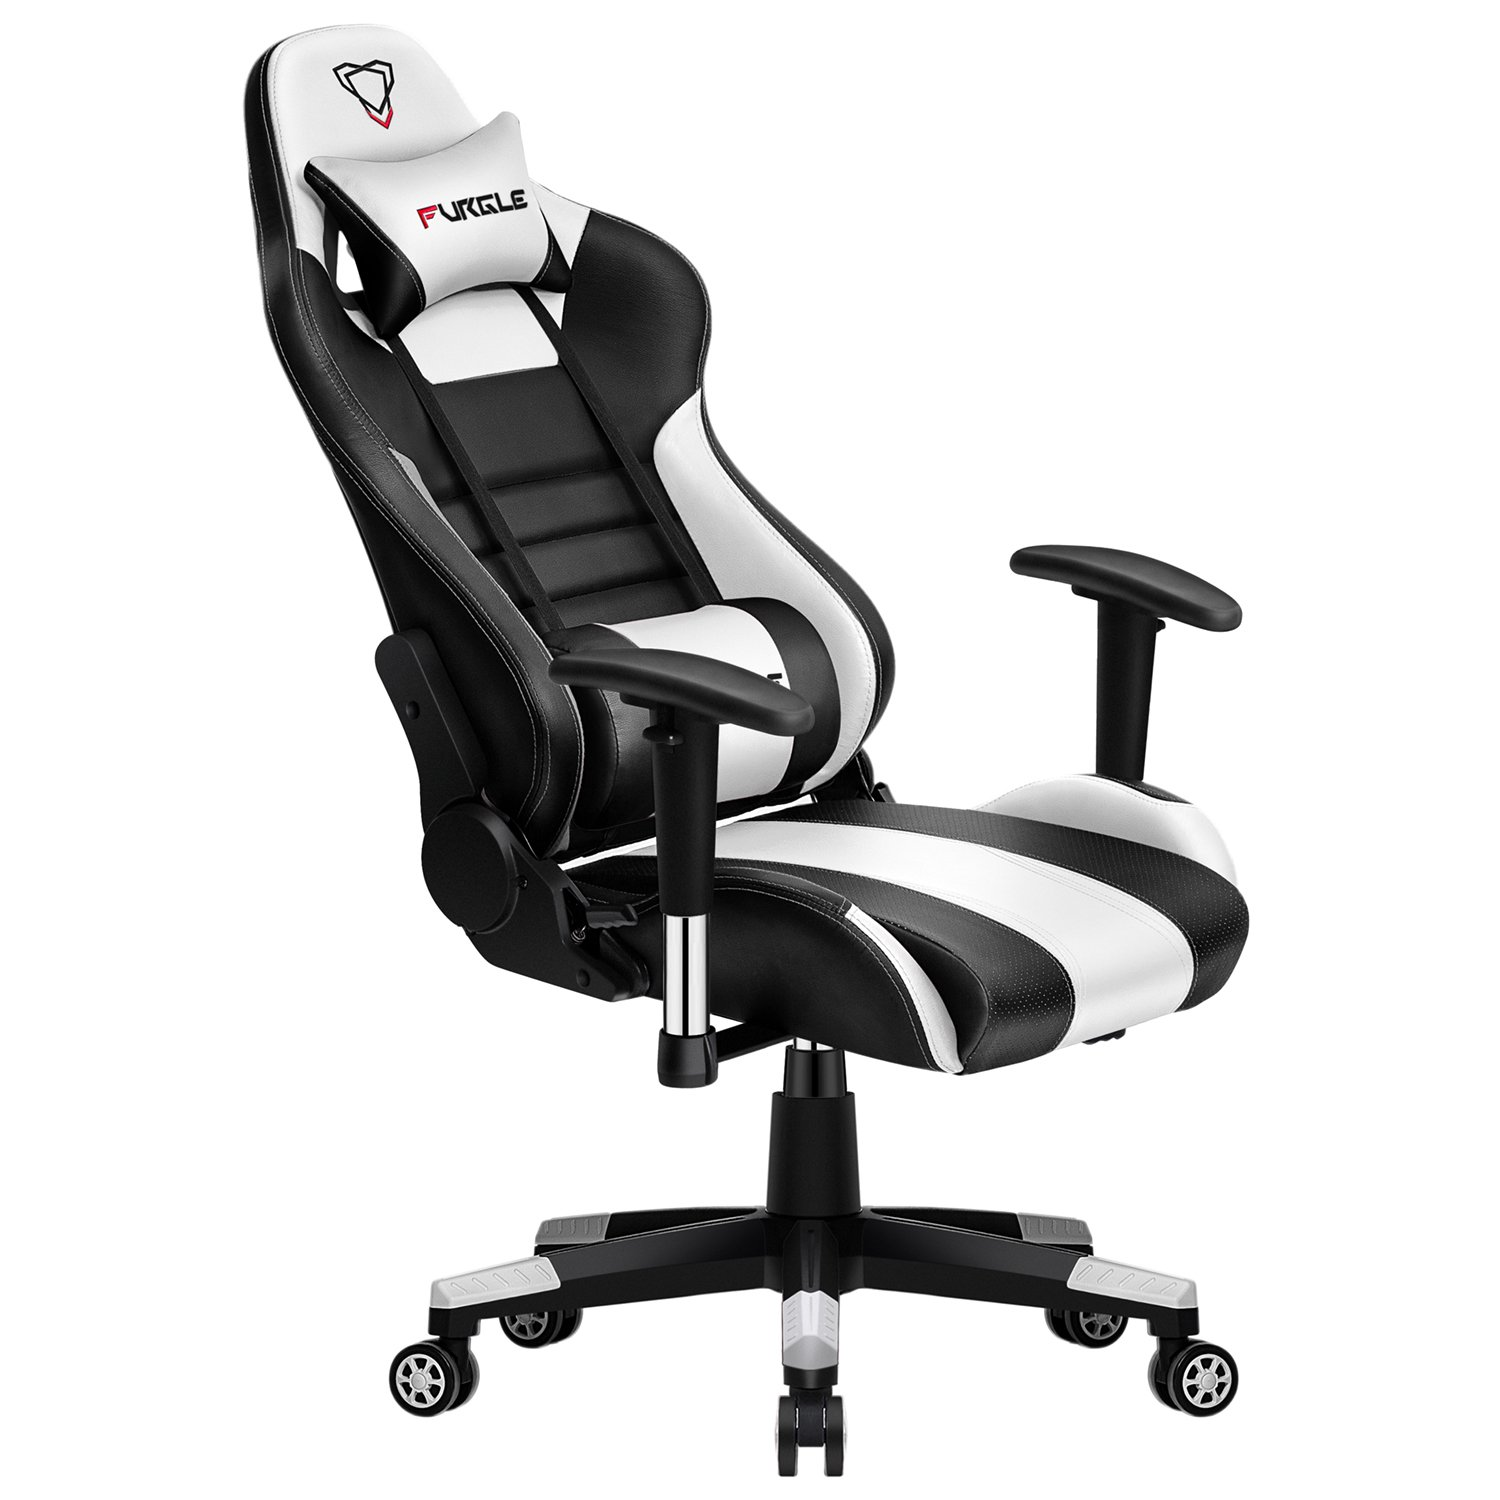 Furgle Body Huging Design Office Seat Gaming Chair White WCG Gaming Chair Engineering Nylon Base Computer Chair With PU Leather